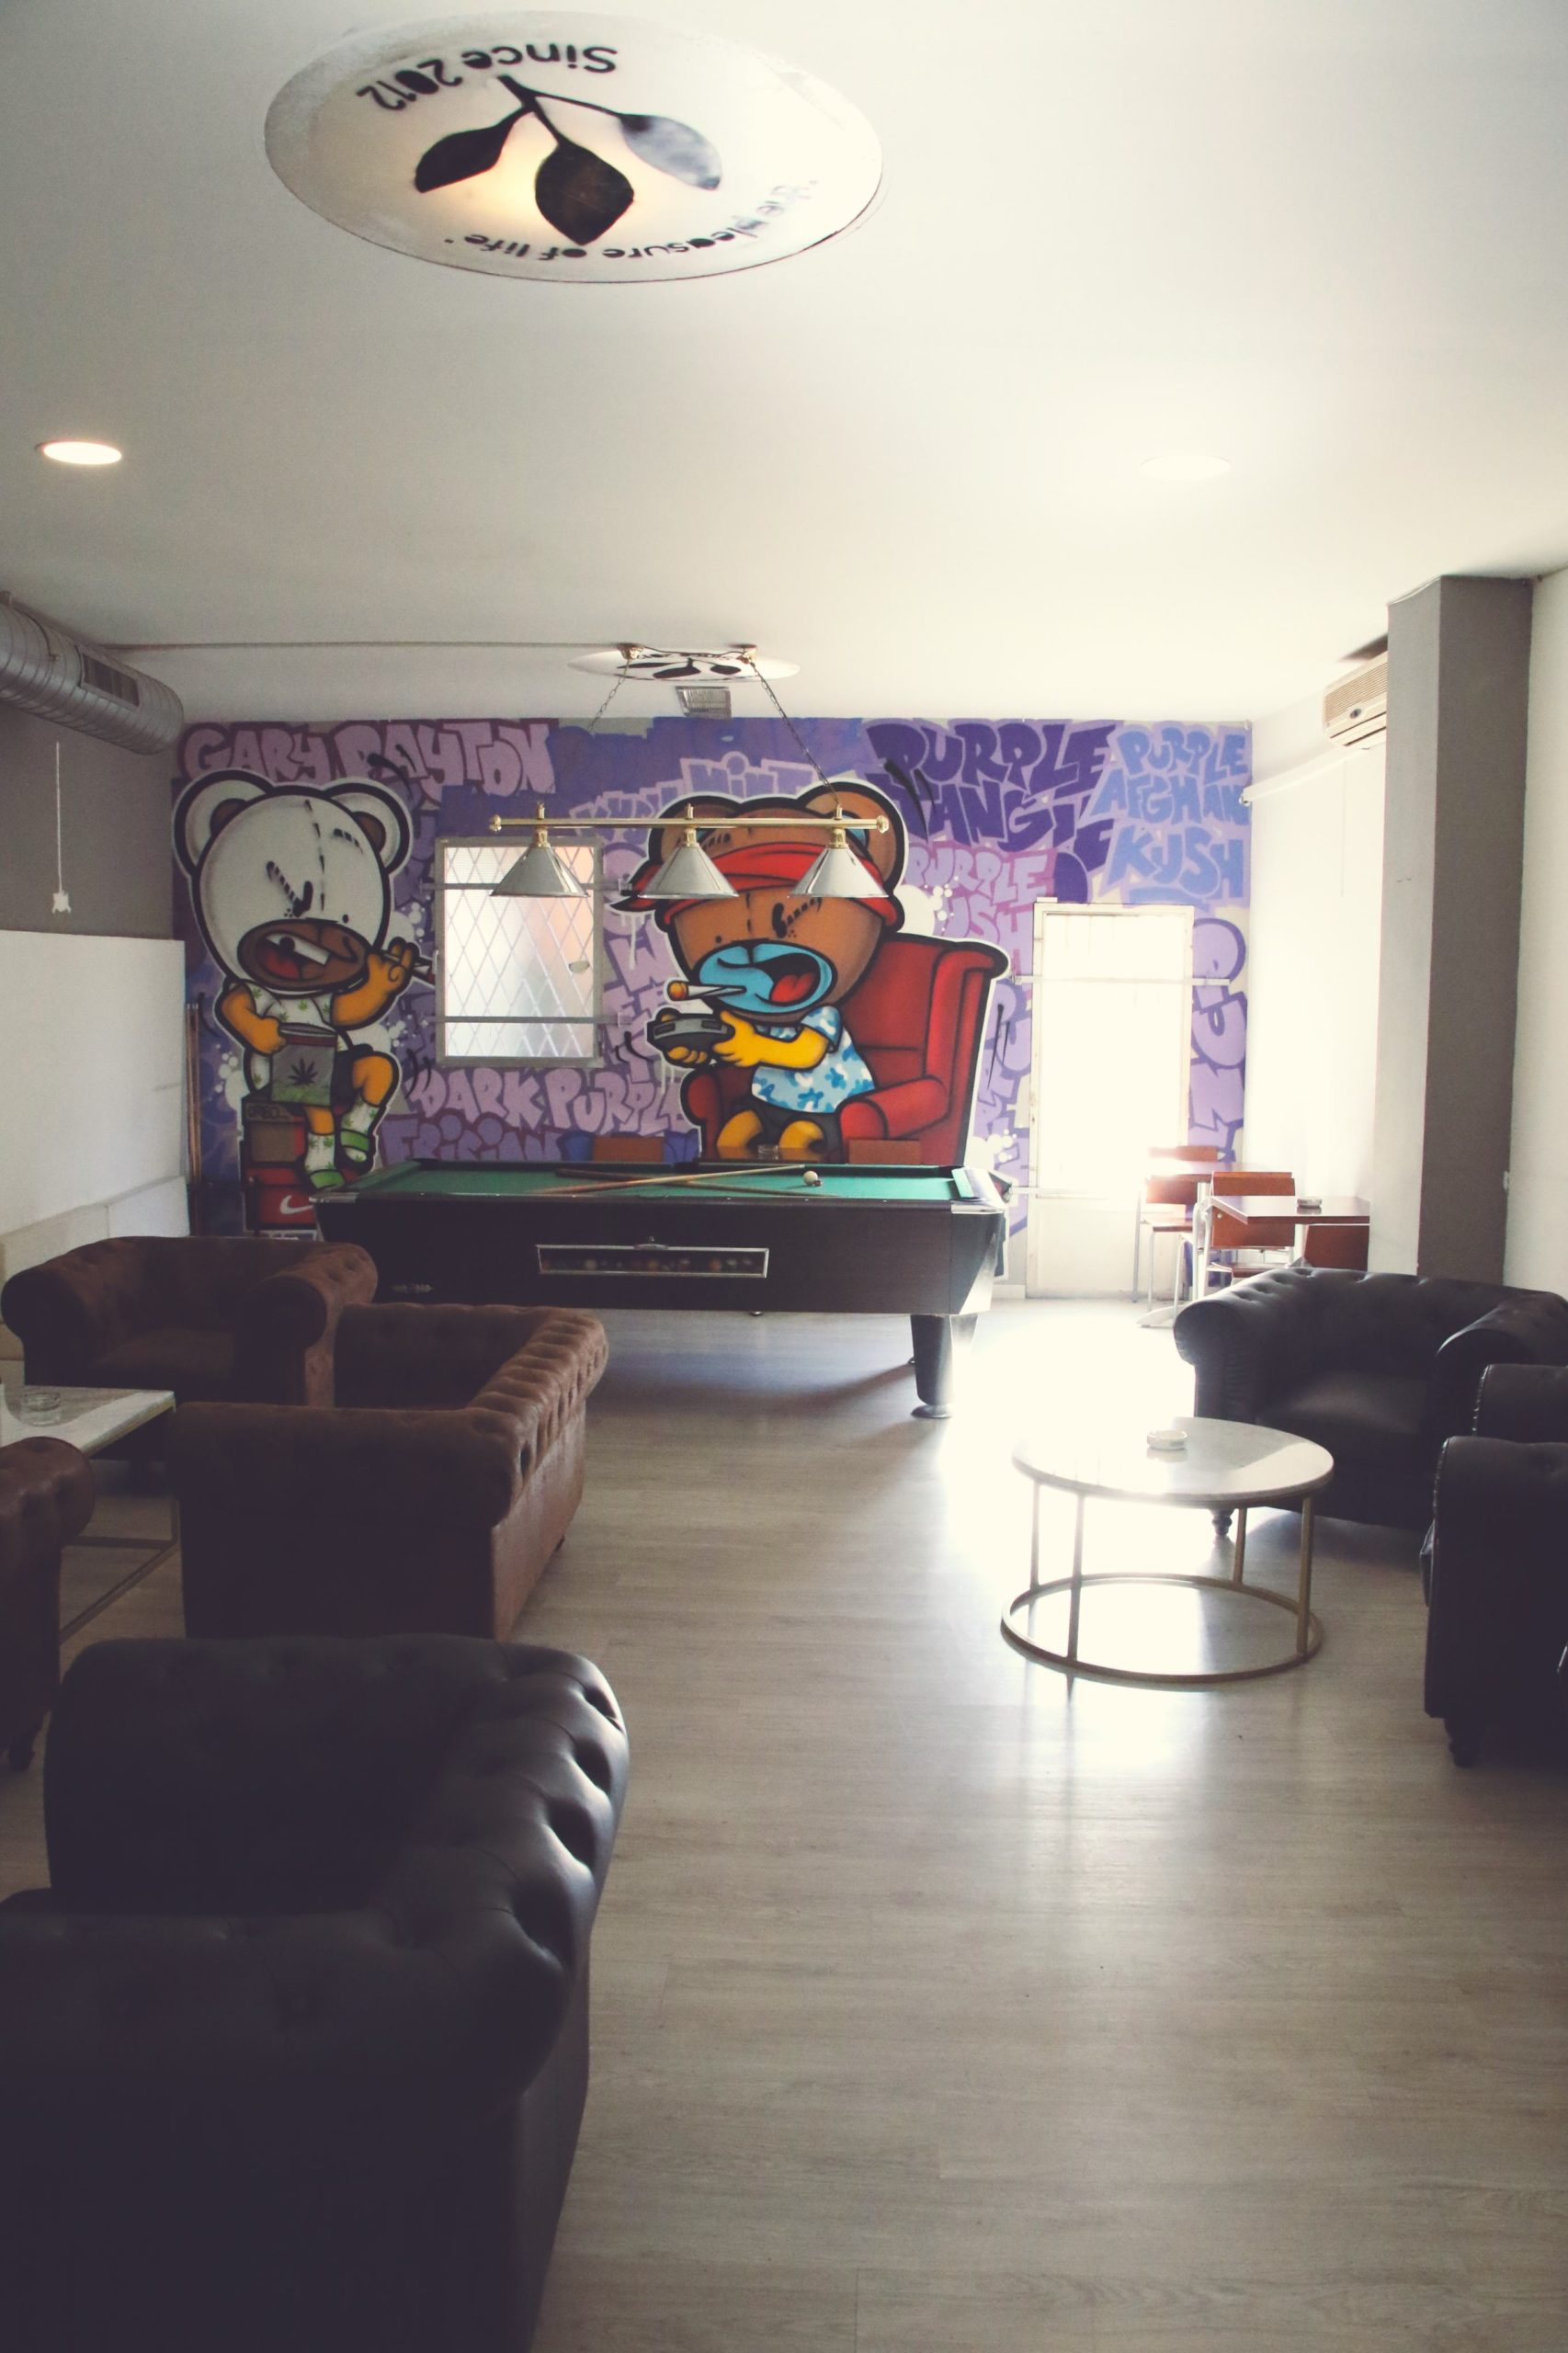 weed vice space with pool table chairs and tables